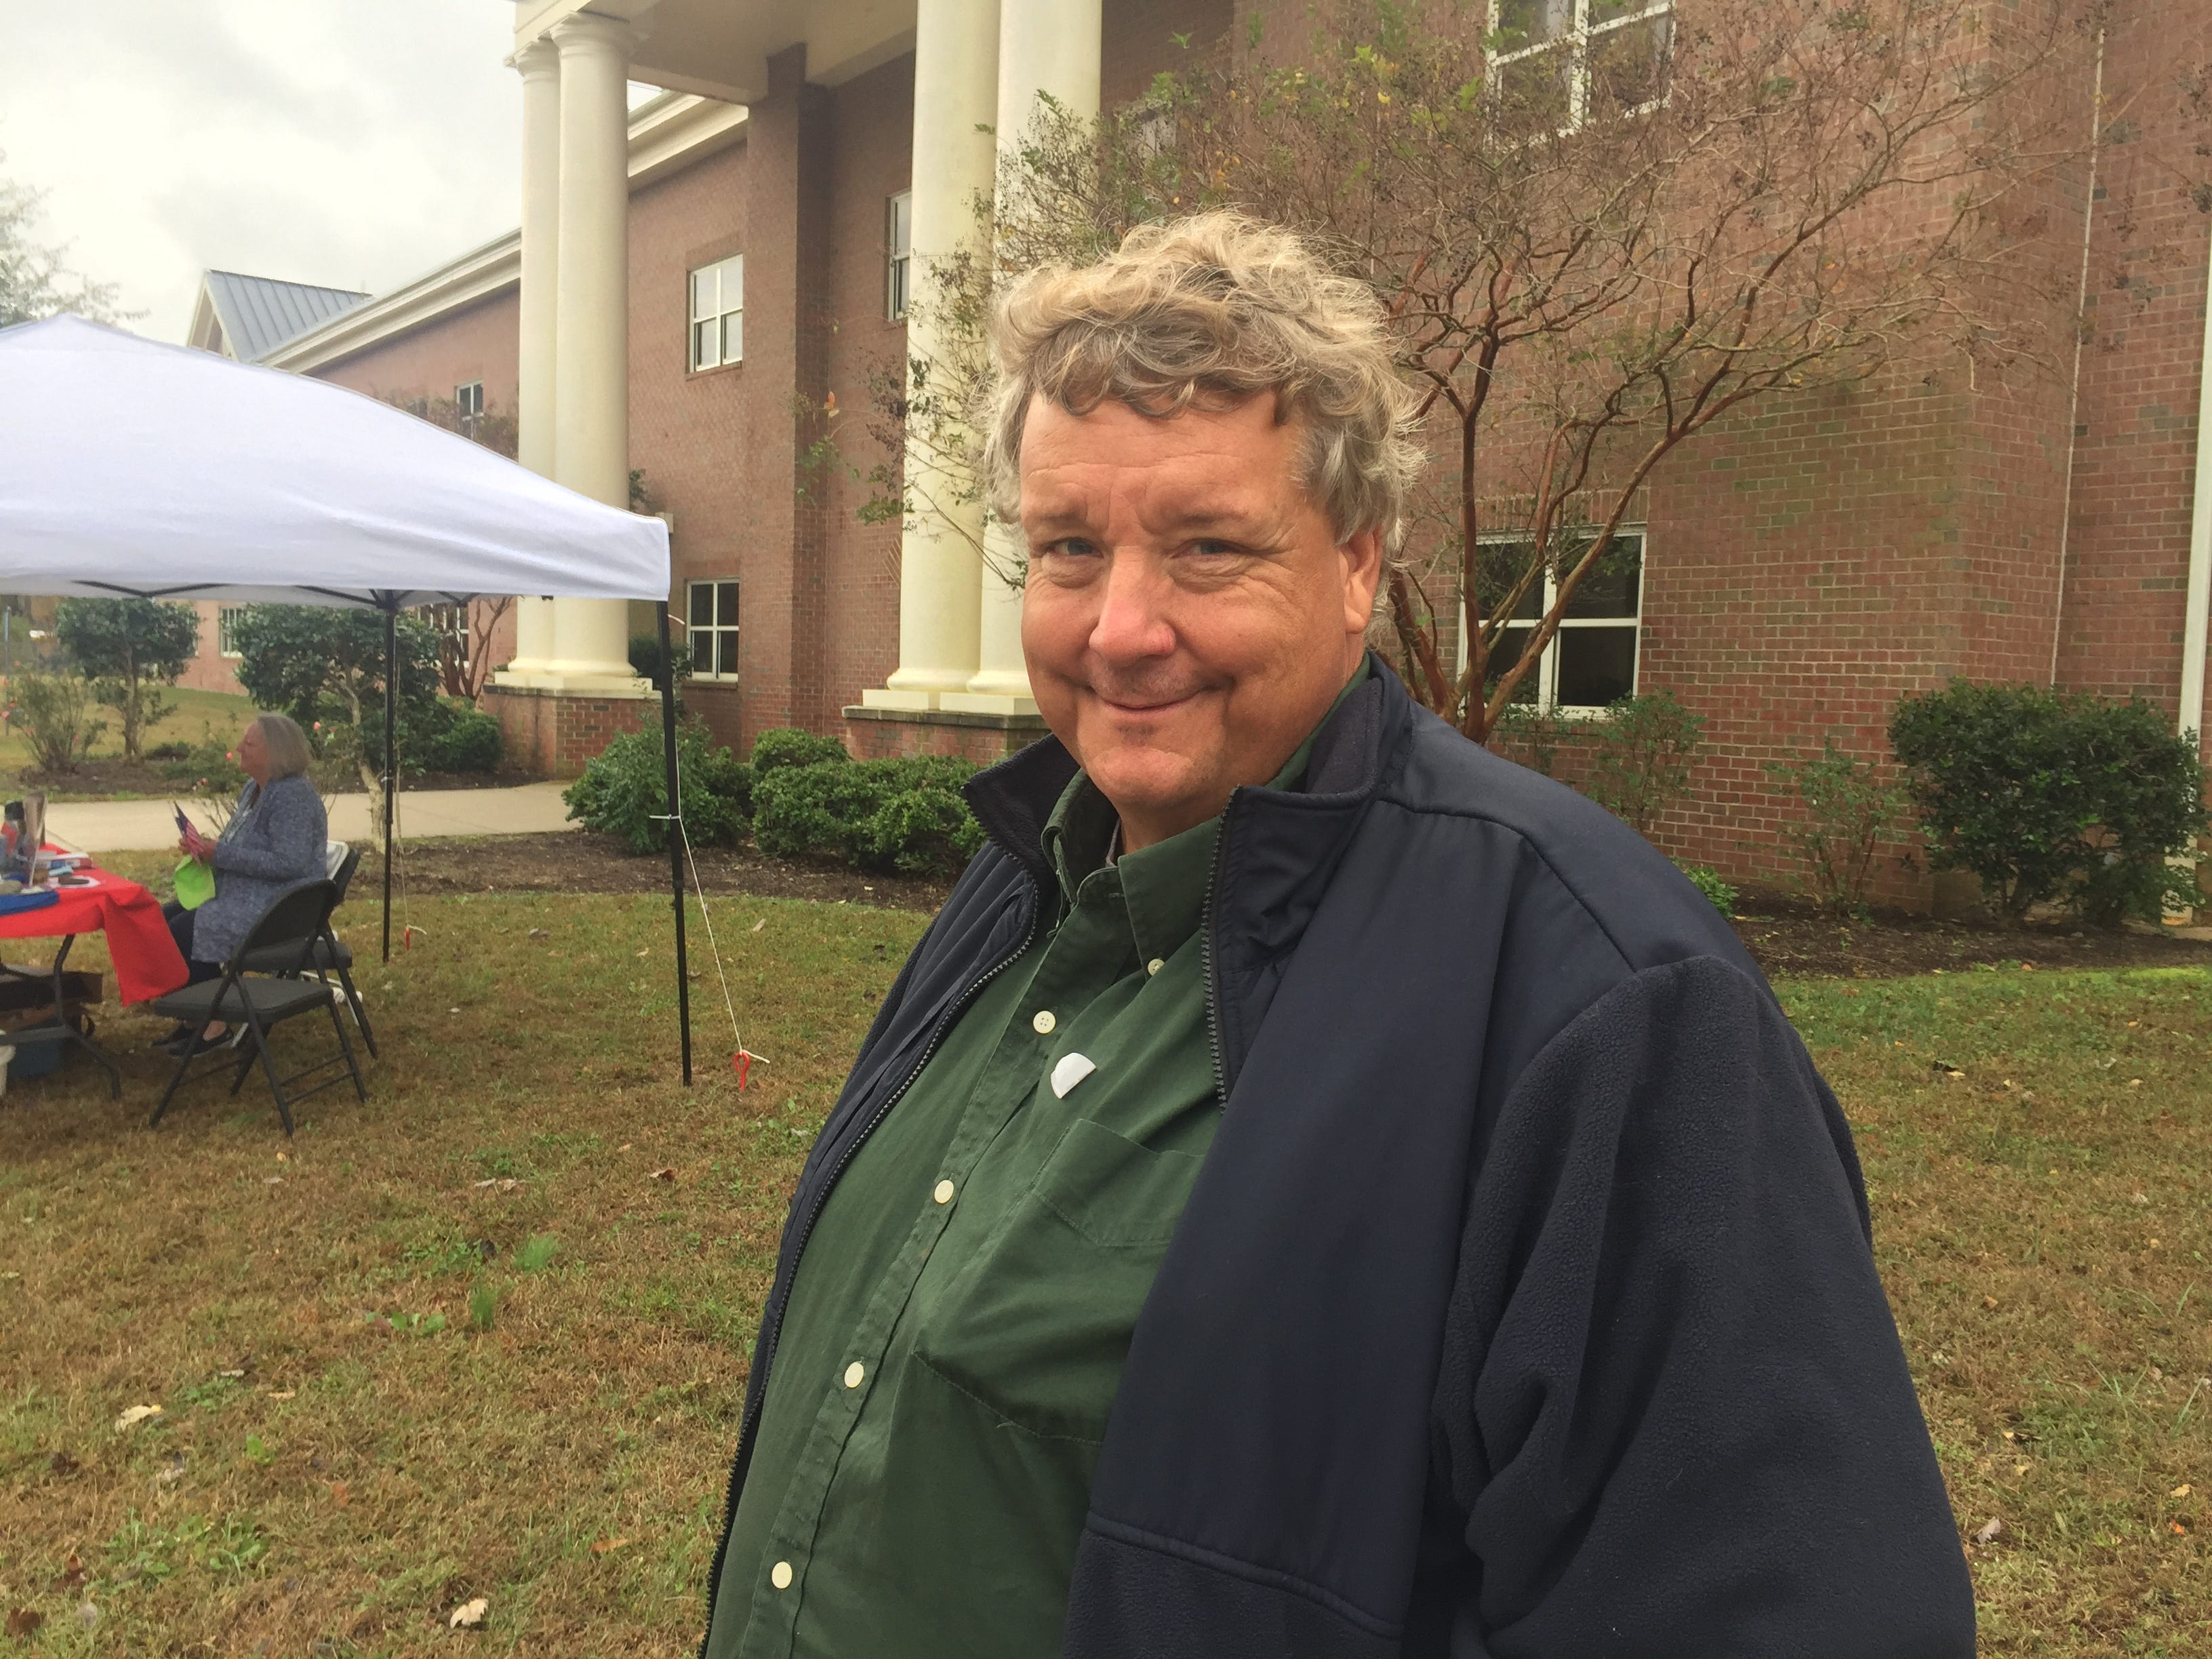 Onley mayoral candidate Bill Ferguson stands outside the polling place at Nandua Middle School in Onley, Virginia on Tuesday, Nov. 6, 2018.